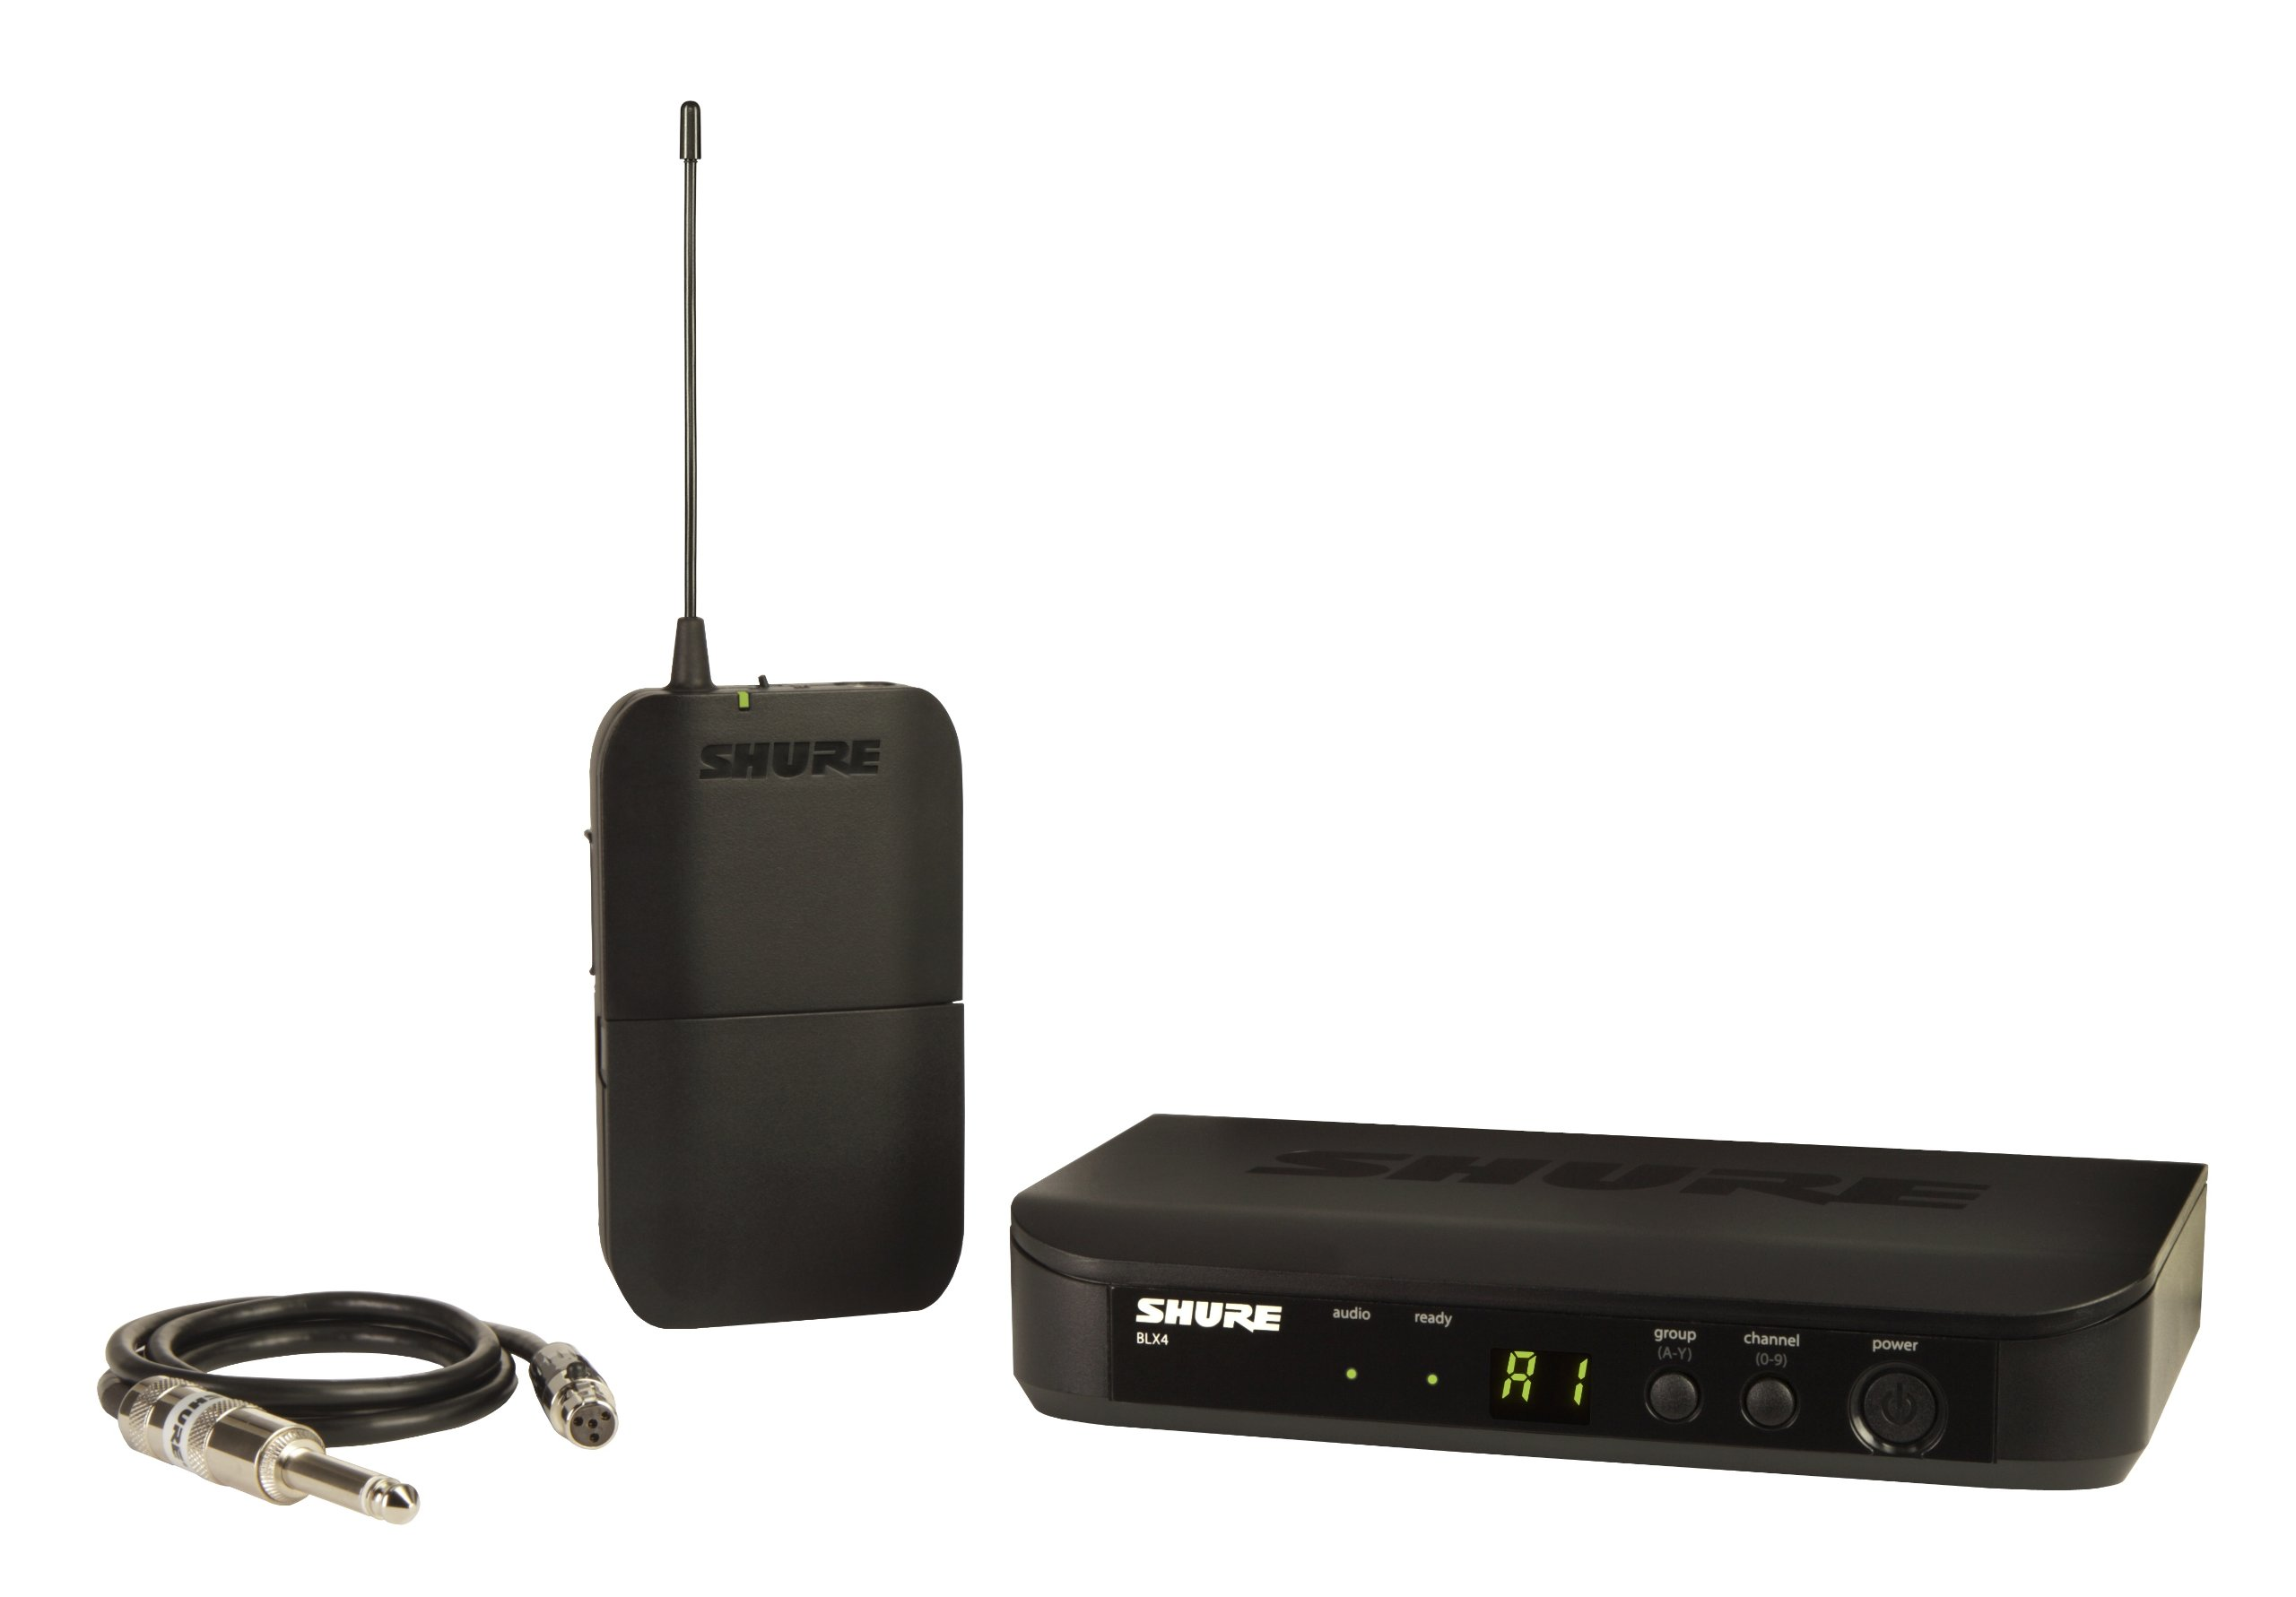 Shure BLX14 Wireless Guitar System with WA302 Guitar Cable, J10